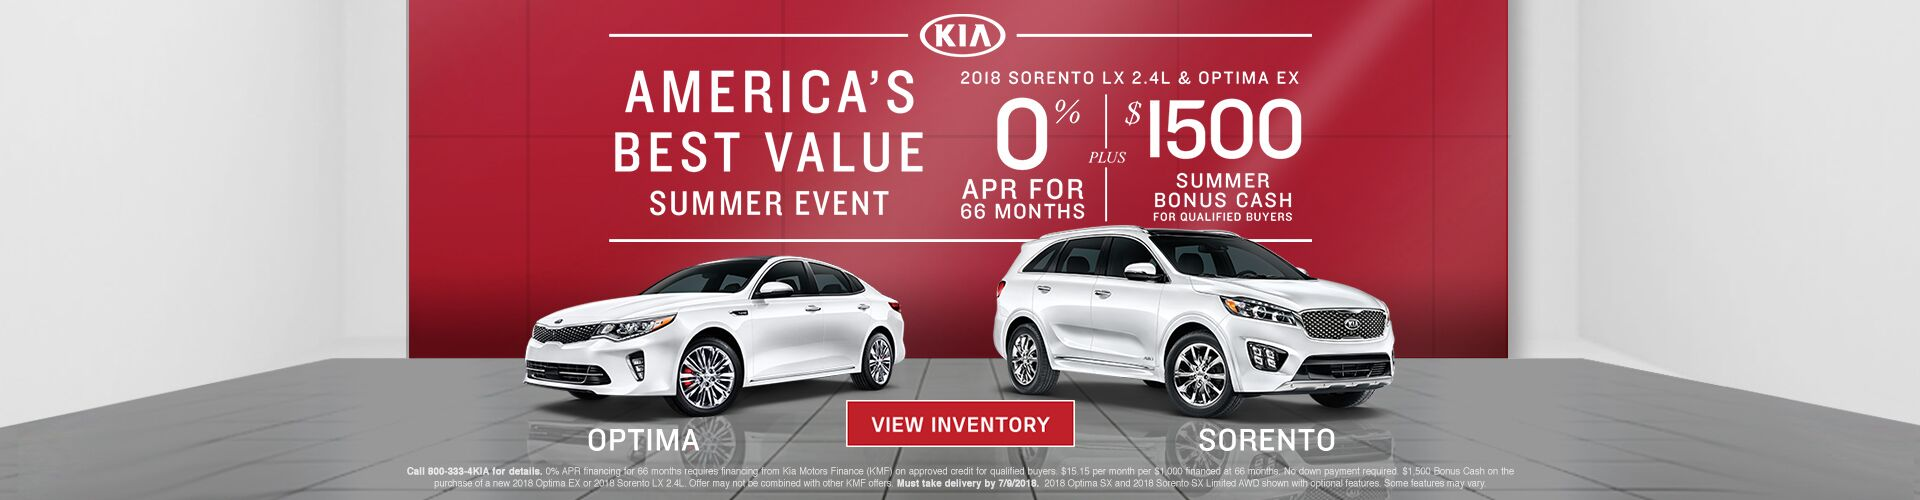 America's Best Value Summer Event at Concord Kia